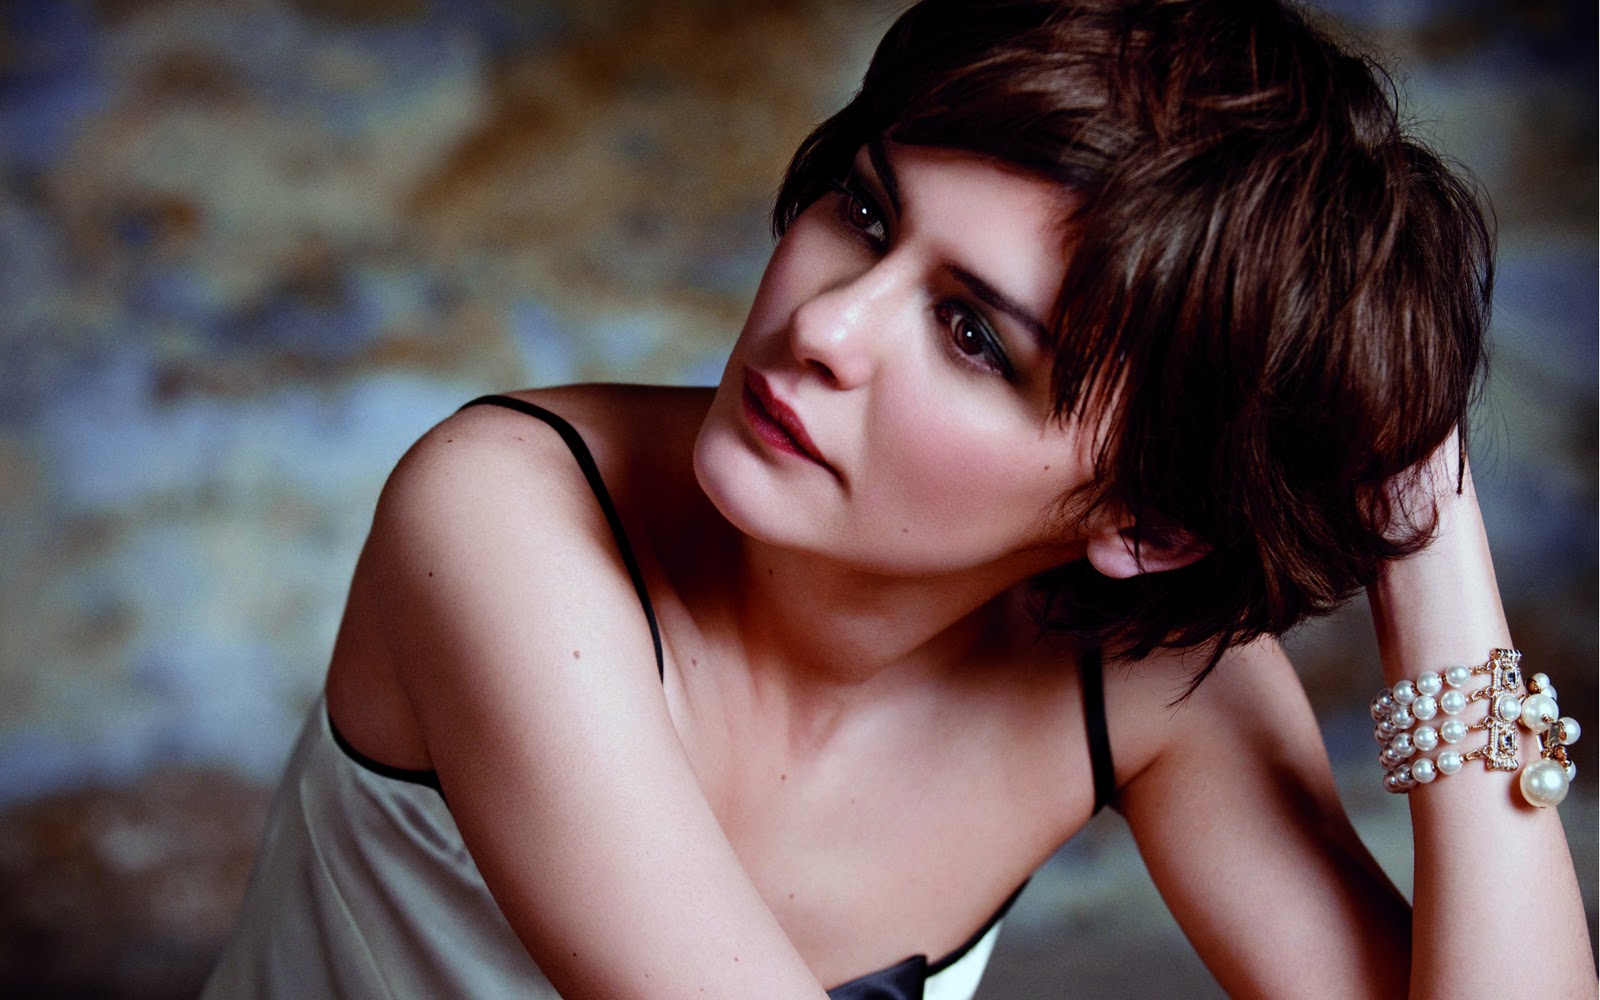 audrey tautou as amelie wallpapers - Amazon Audrey Tautou as Amelie wallpaper super